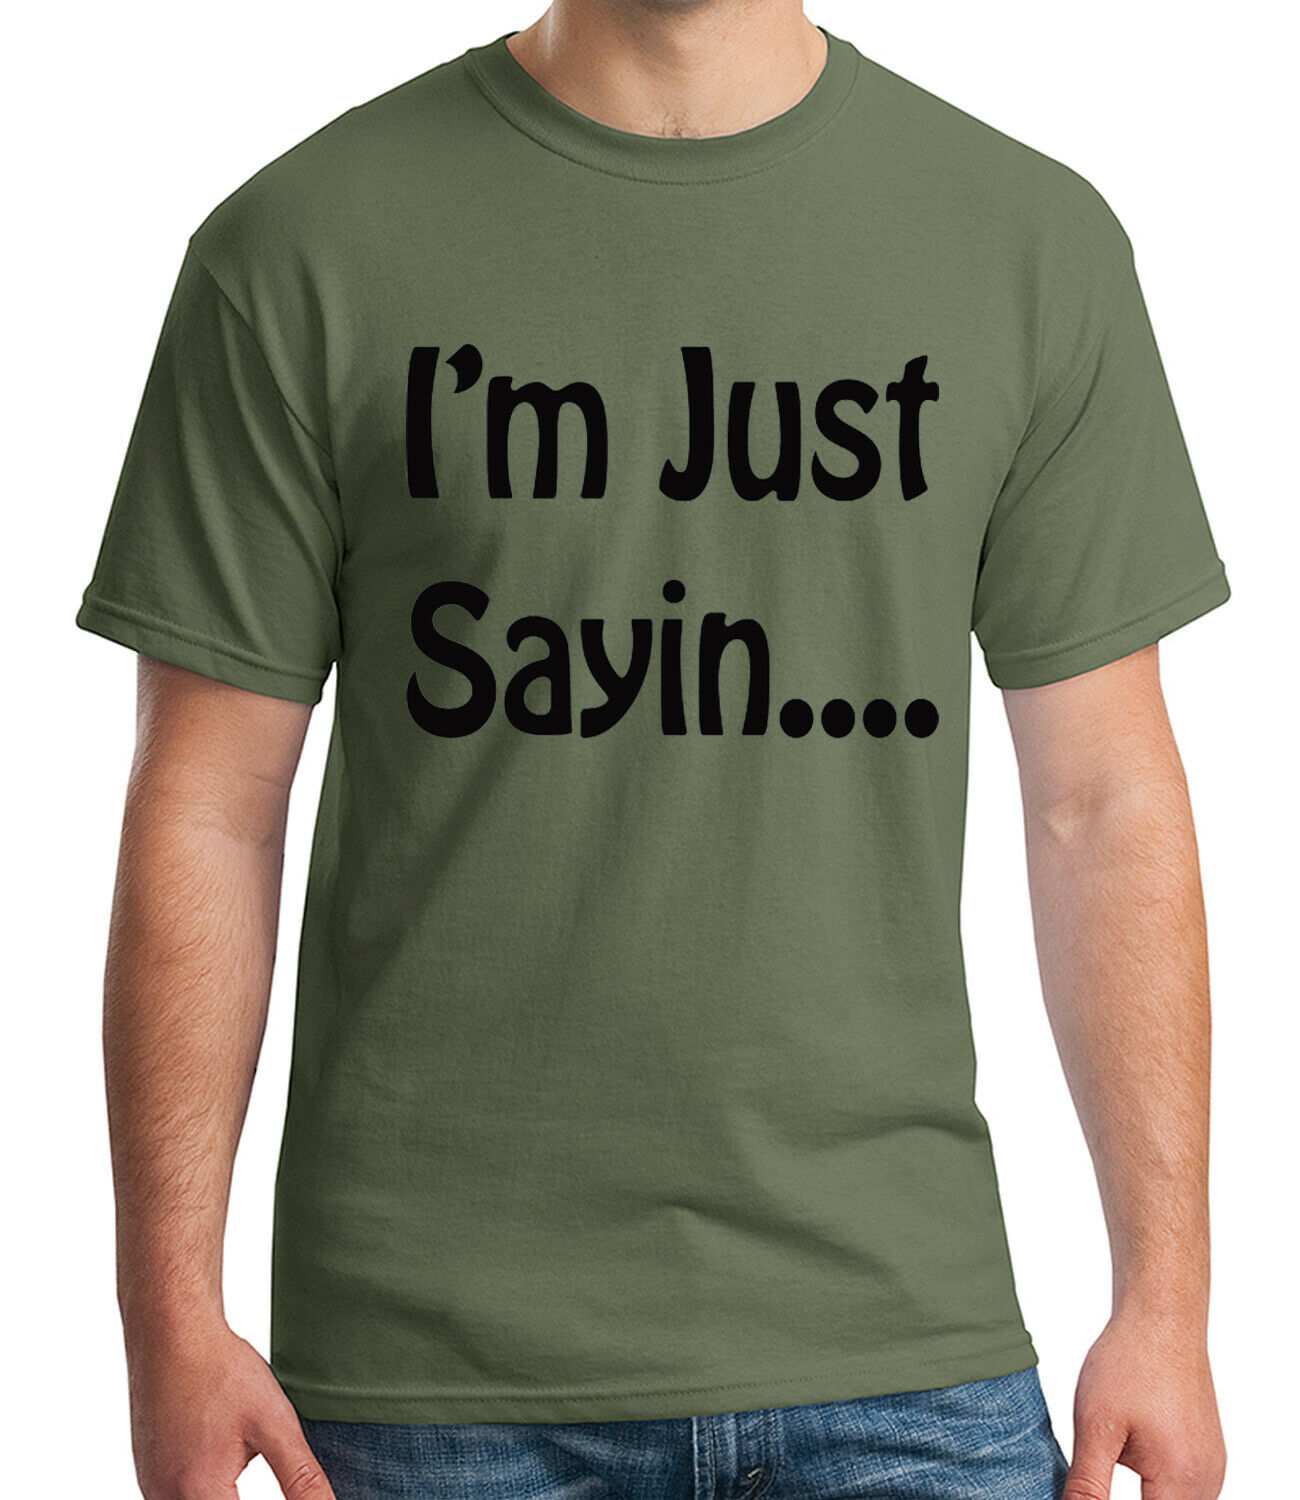 I/'m just Sayin Adult/'s T-shirt Funny Phrase I am just saying Tee for Men 1505C